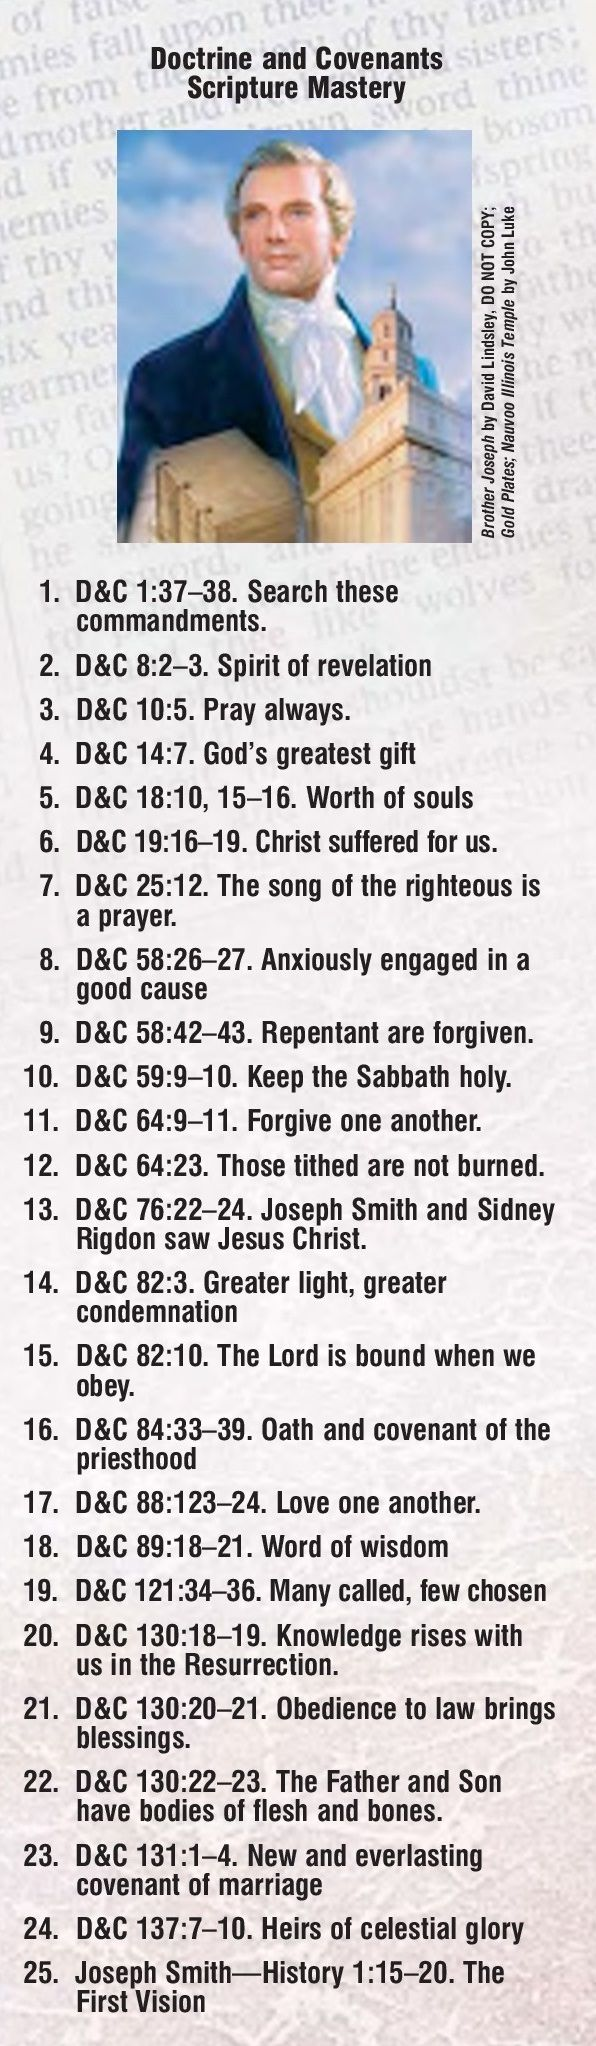 Doctrine and Covenants scripture mastery bookmark. #lds #mormon